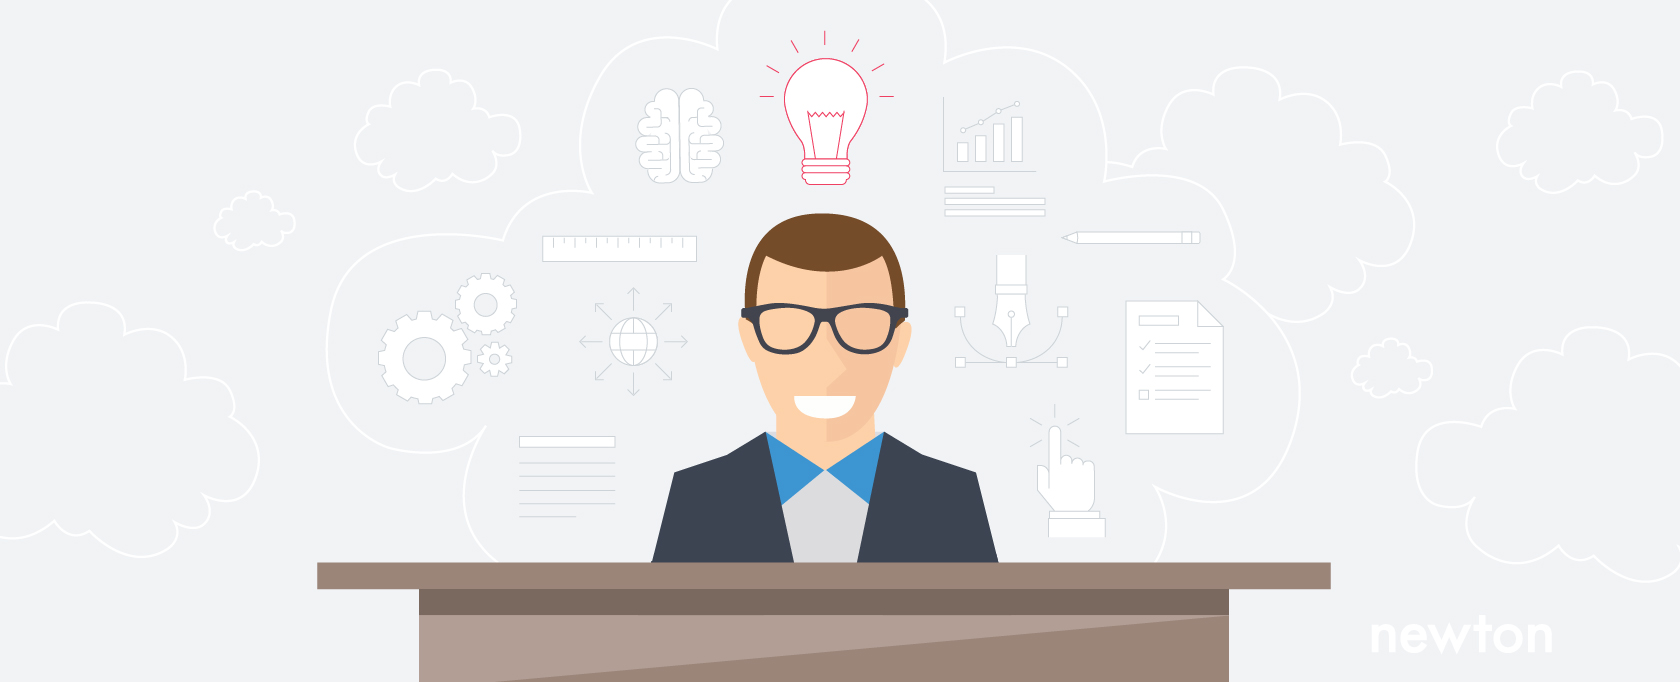 A person applying the principles of design thinking unlocks insights for creating the ideal candidate journey.